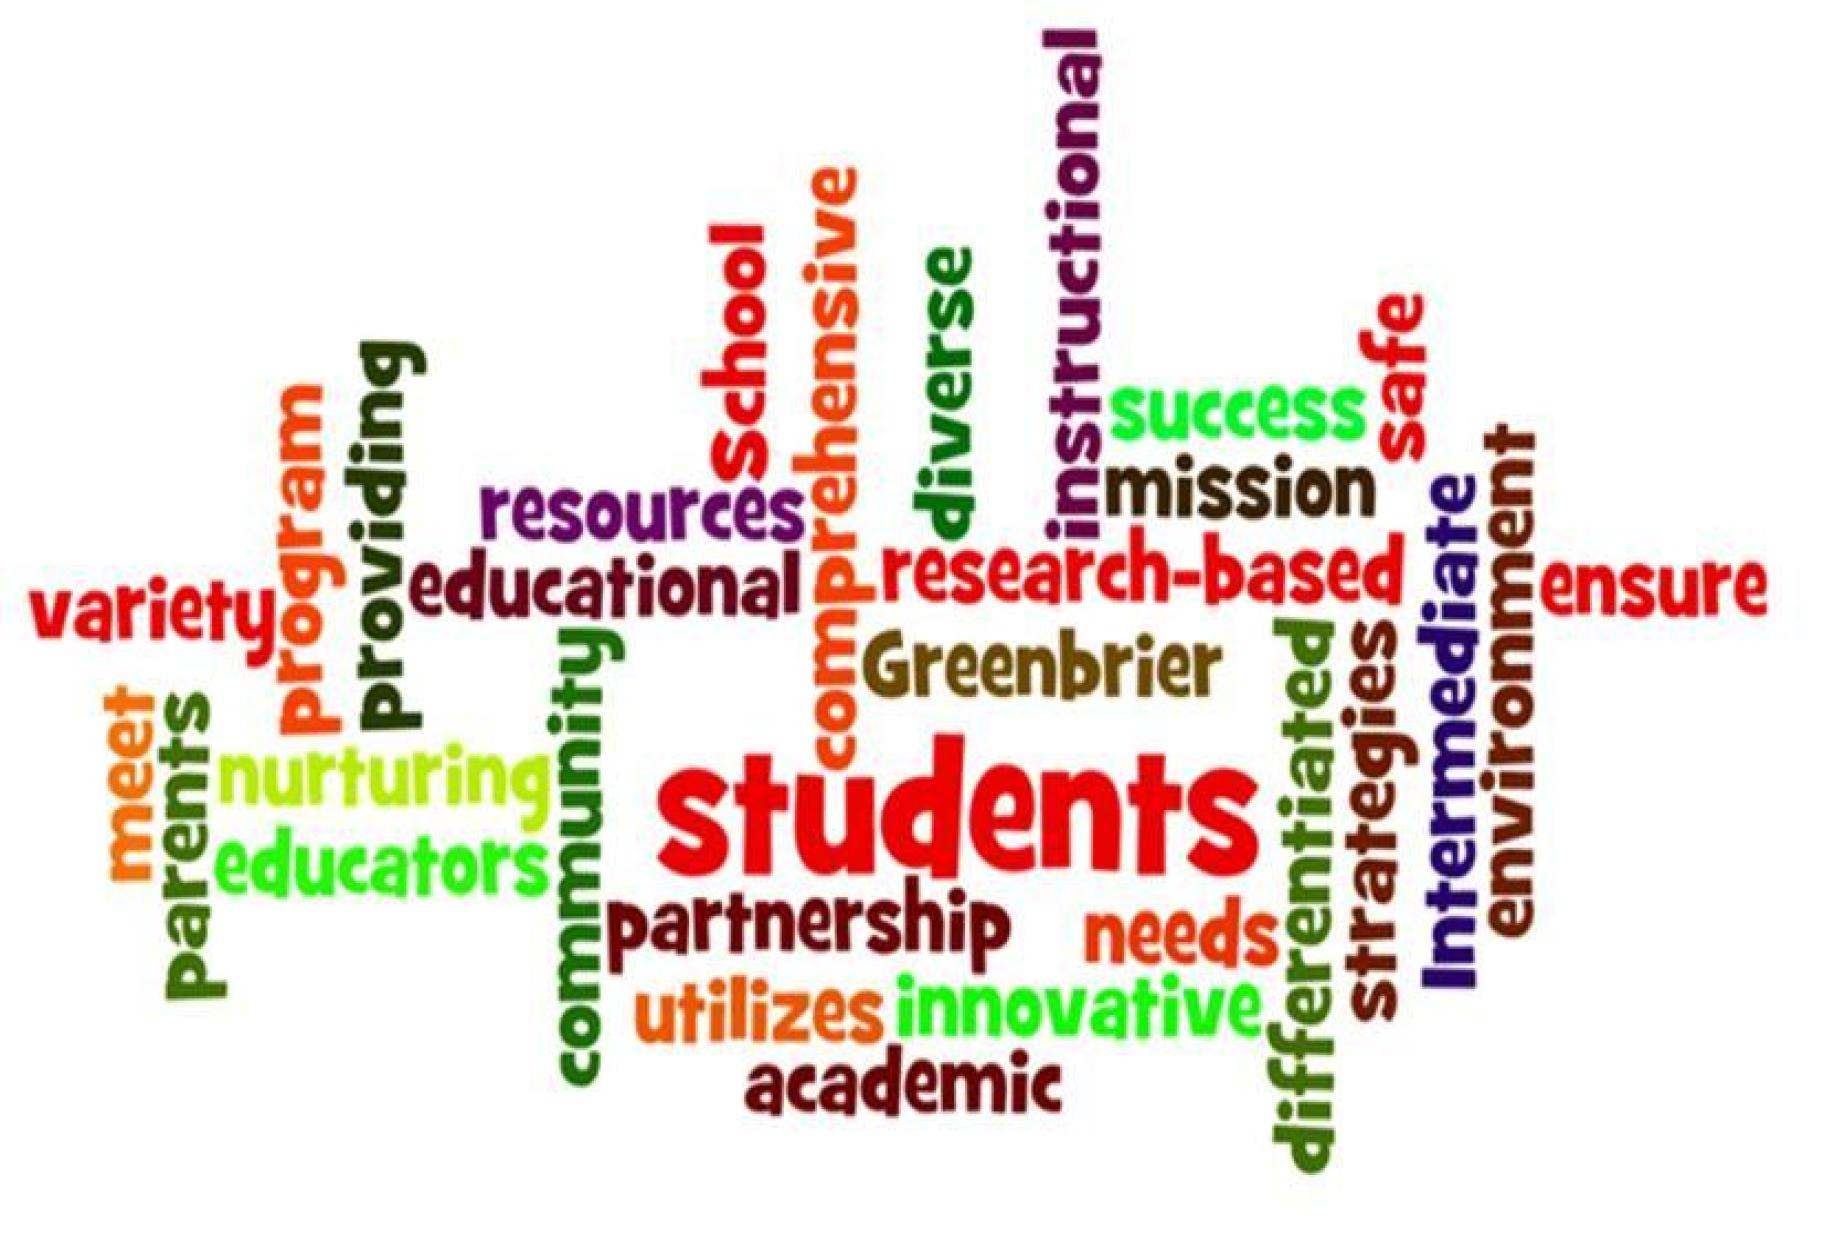 Mission statement key words variety program providing school educational resources diverse instructional success mission safe research-based Greenbrier meet parents nurturing educators community partnership utilizes innovative academic needs differentiated strategies intermediate environment ensure students